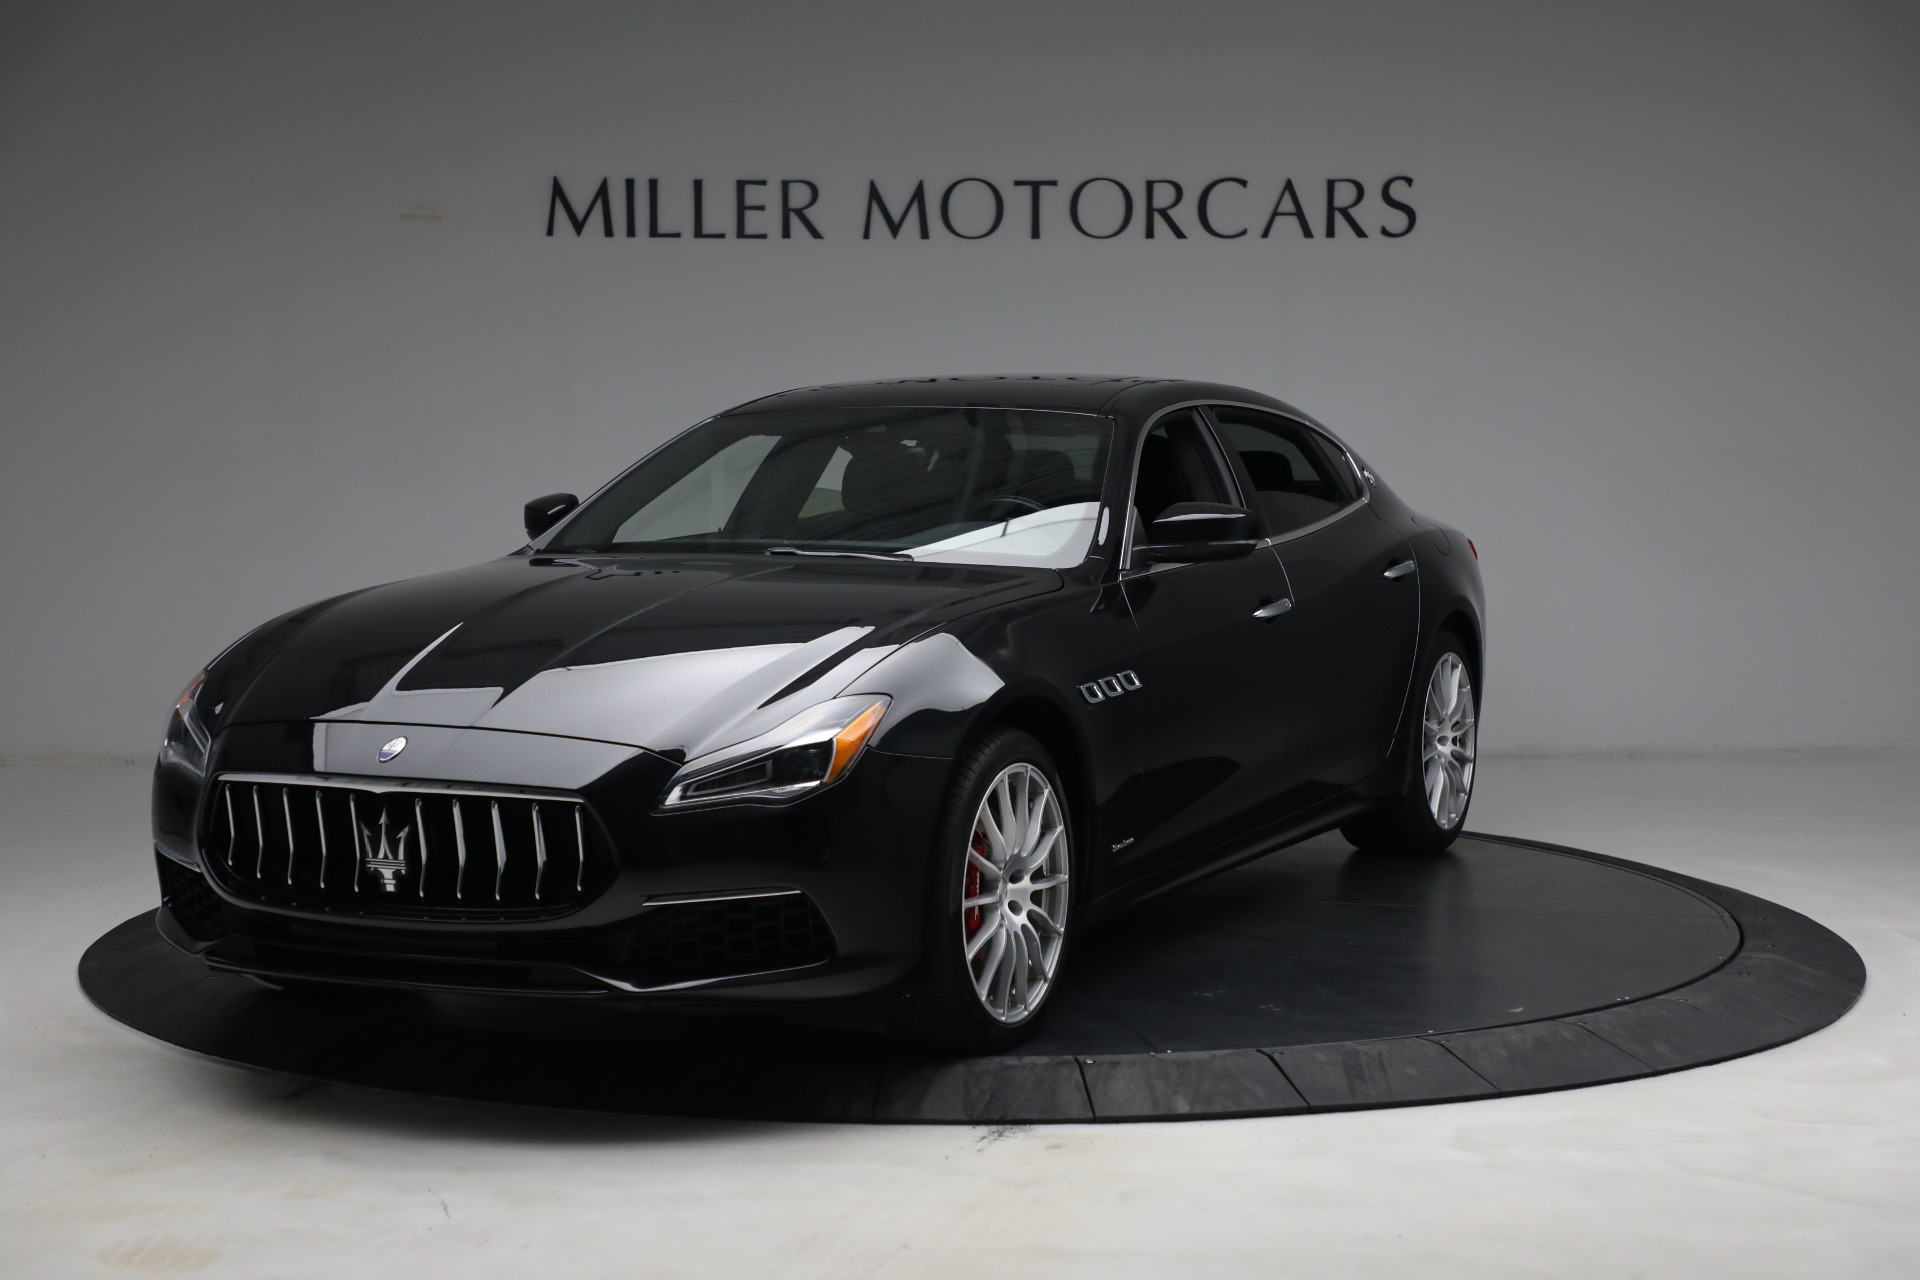 Used 2019 Maserati Quattroporte S Q4 GranLusso for sale $68,900 at Rolls-Royce Motor Cars Greenwich in Greenwich CT 06830 1